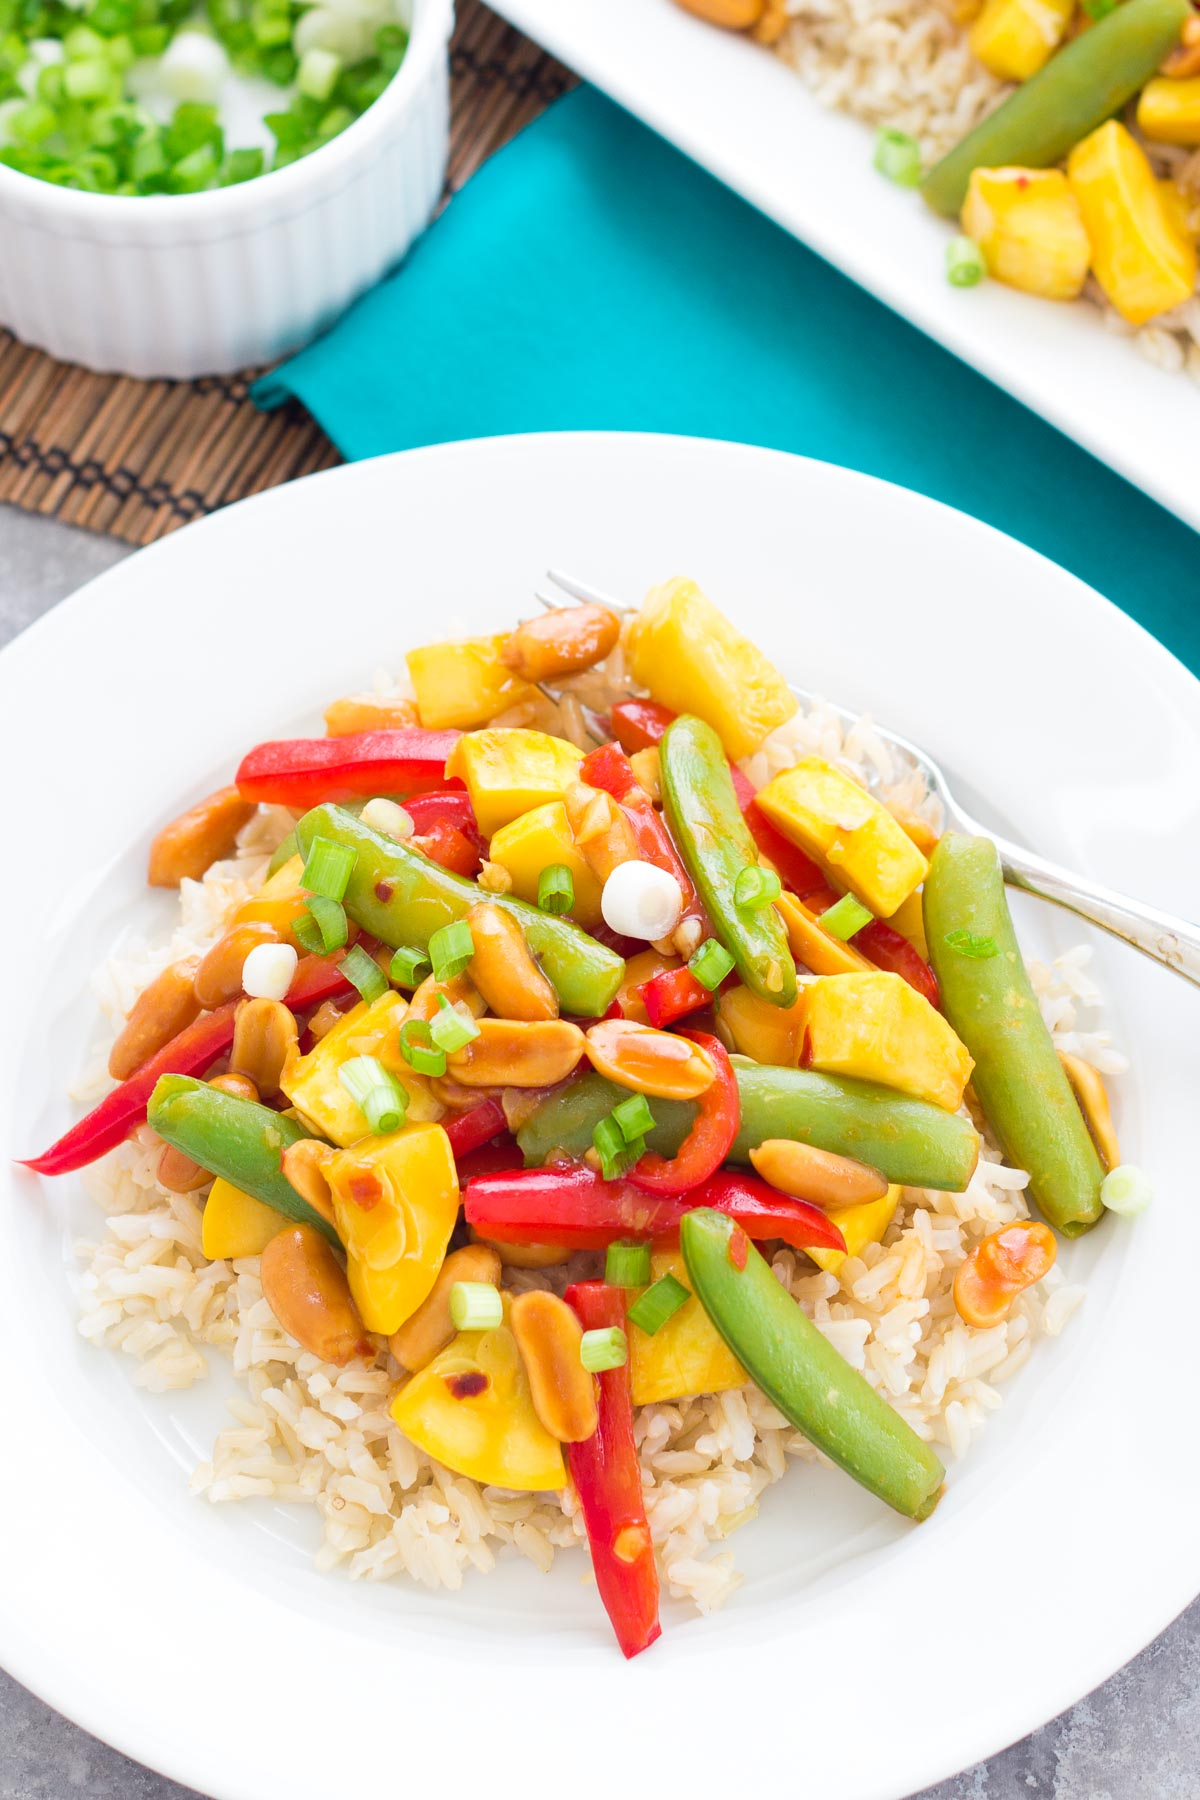 Vegetable stir fry served over brown rice.